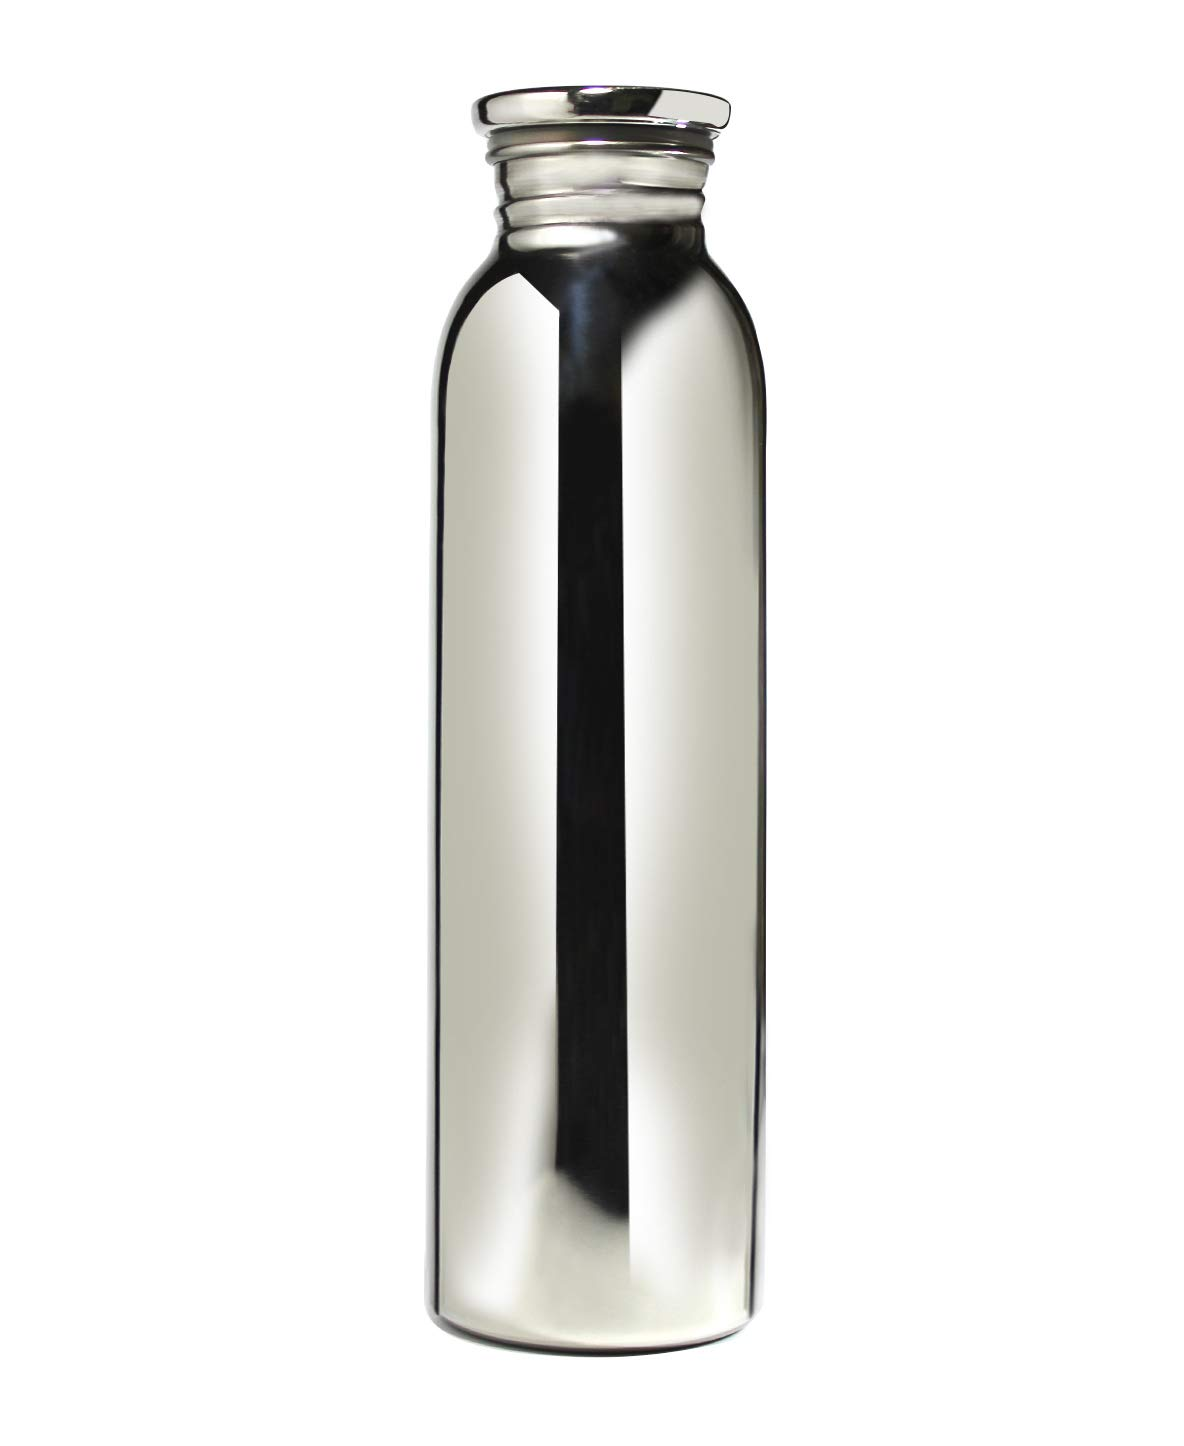 Superbazaar Ultra High Quality 100% Stainless Steel Bottle (no Plastic At All) 1000 Ml - 1 Pc